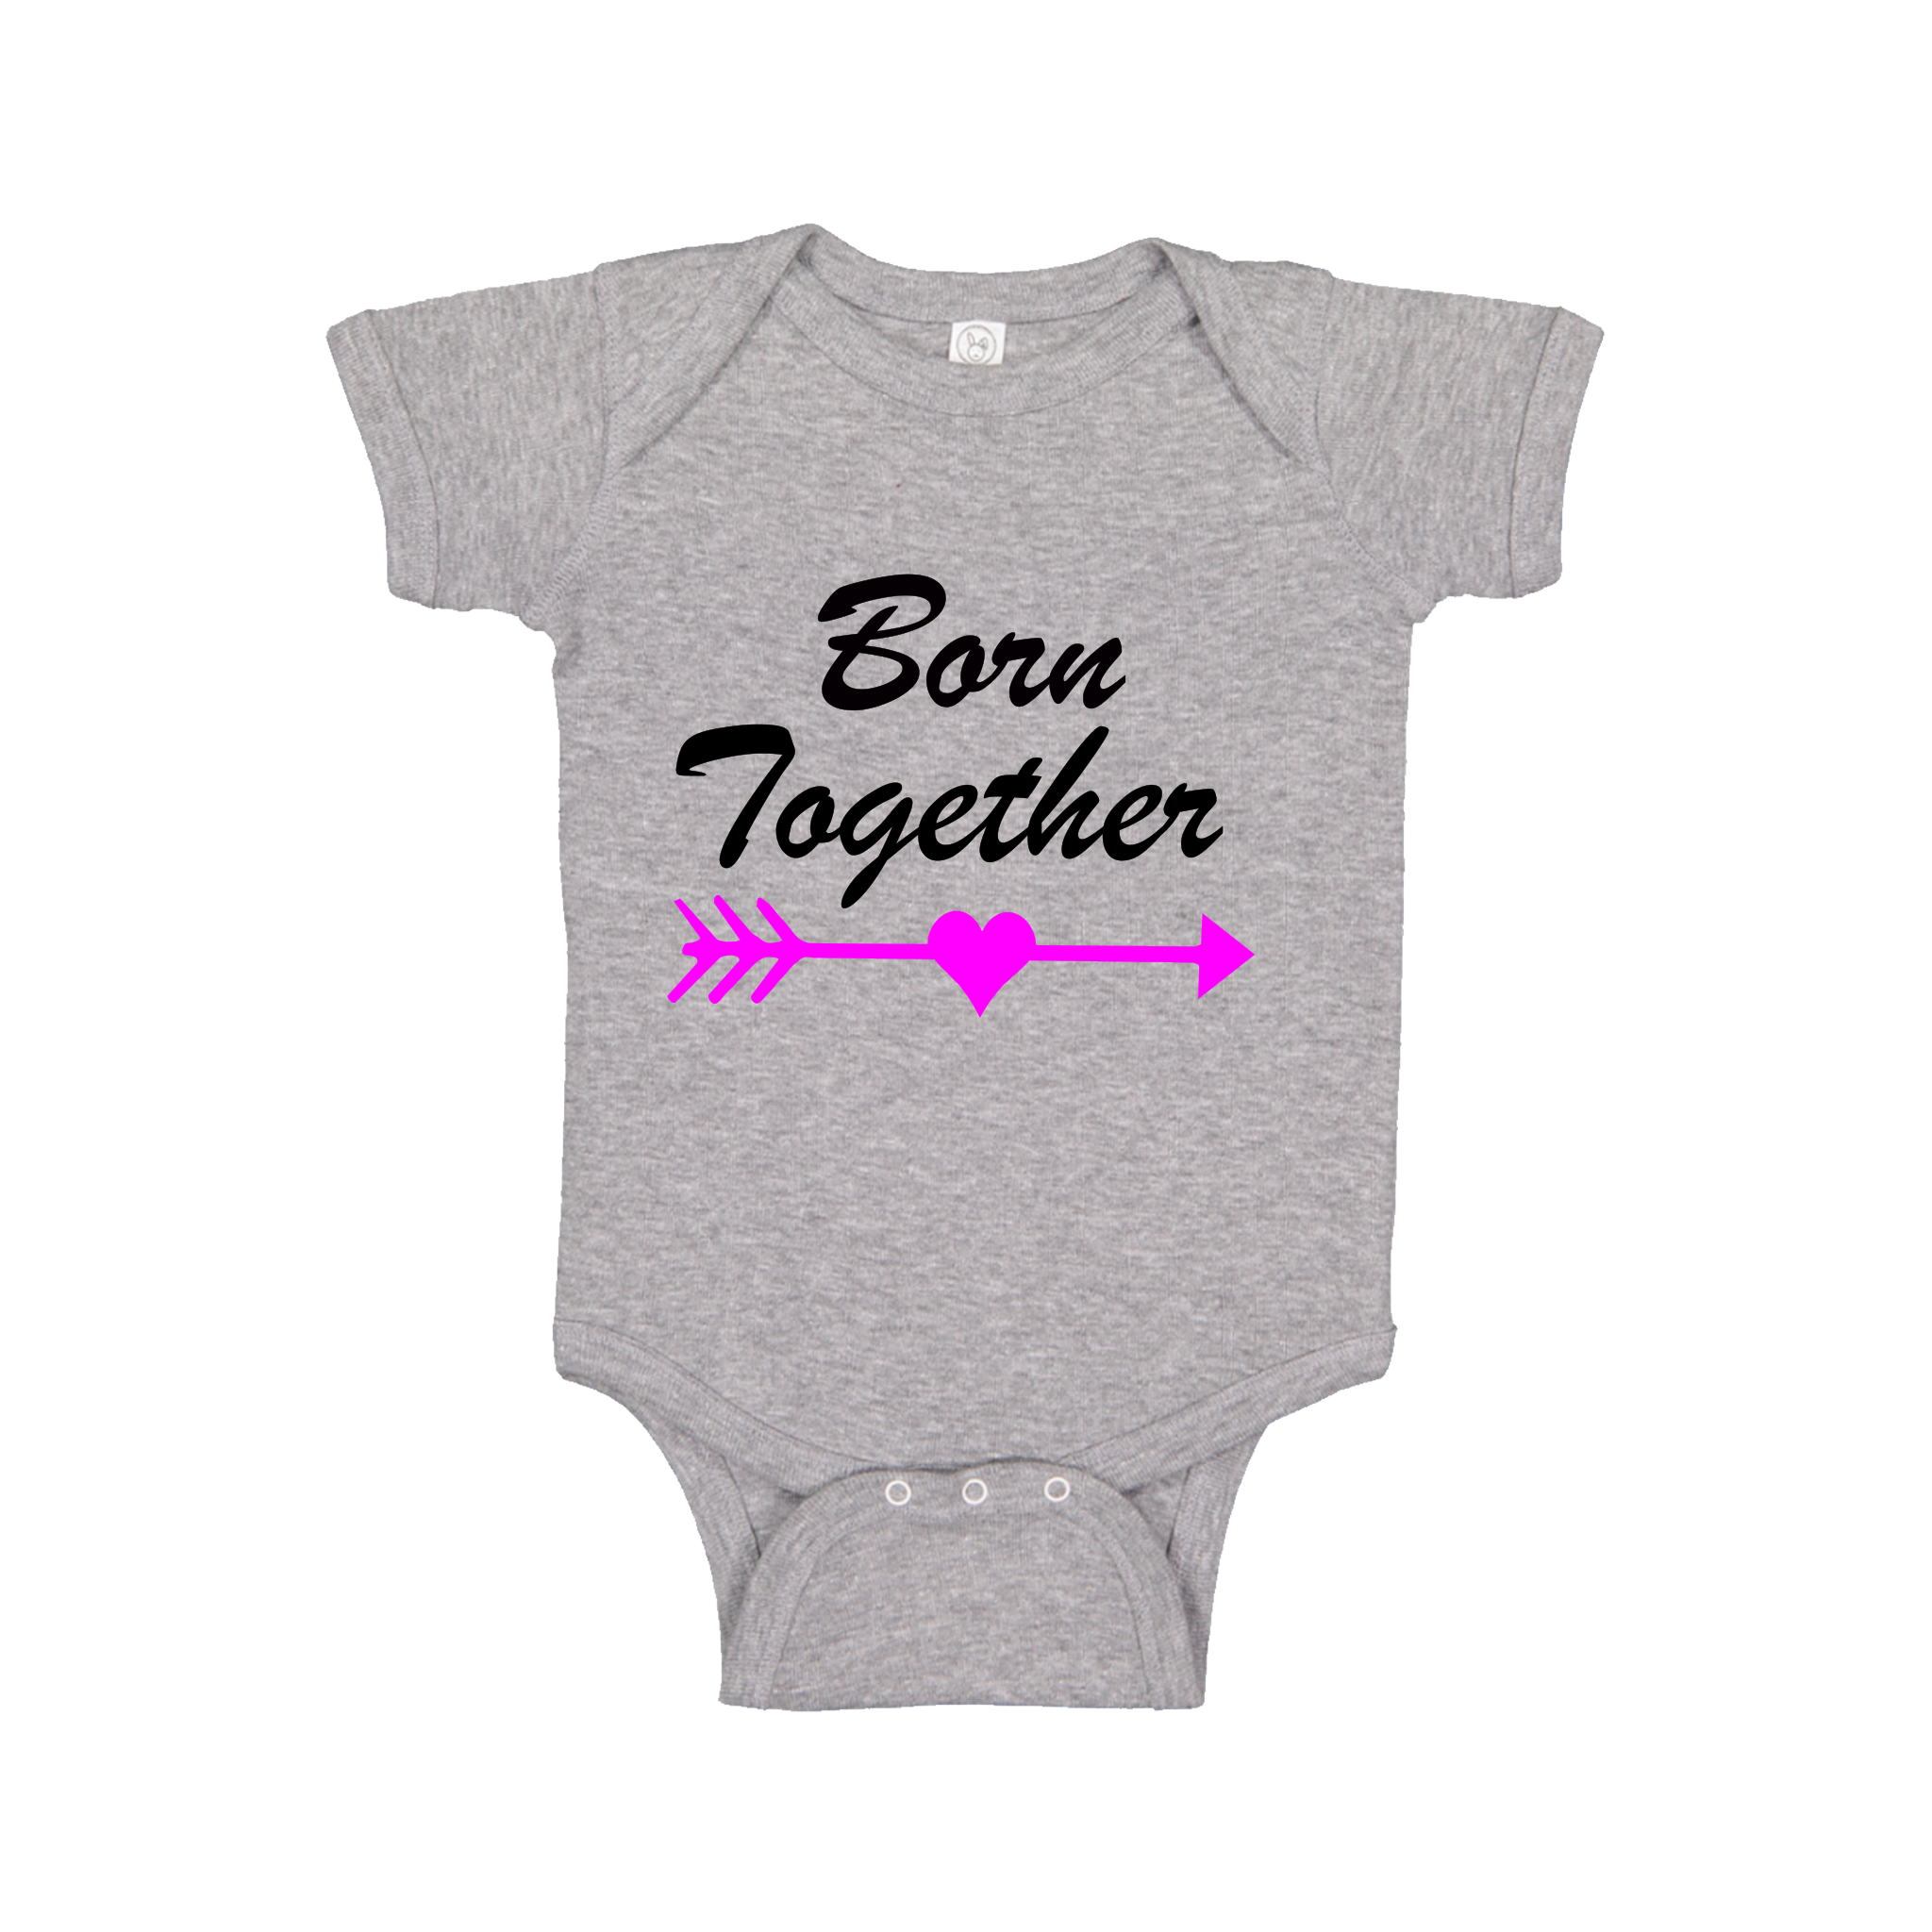 Twins Born Together Baby Onesie Matching - 0 - 24 months - Festival Printing